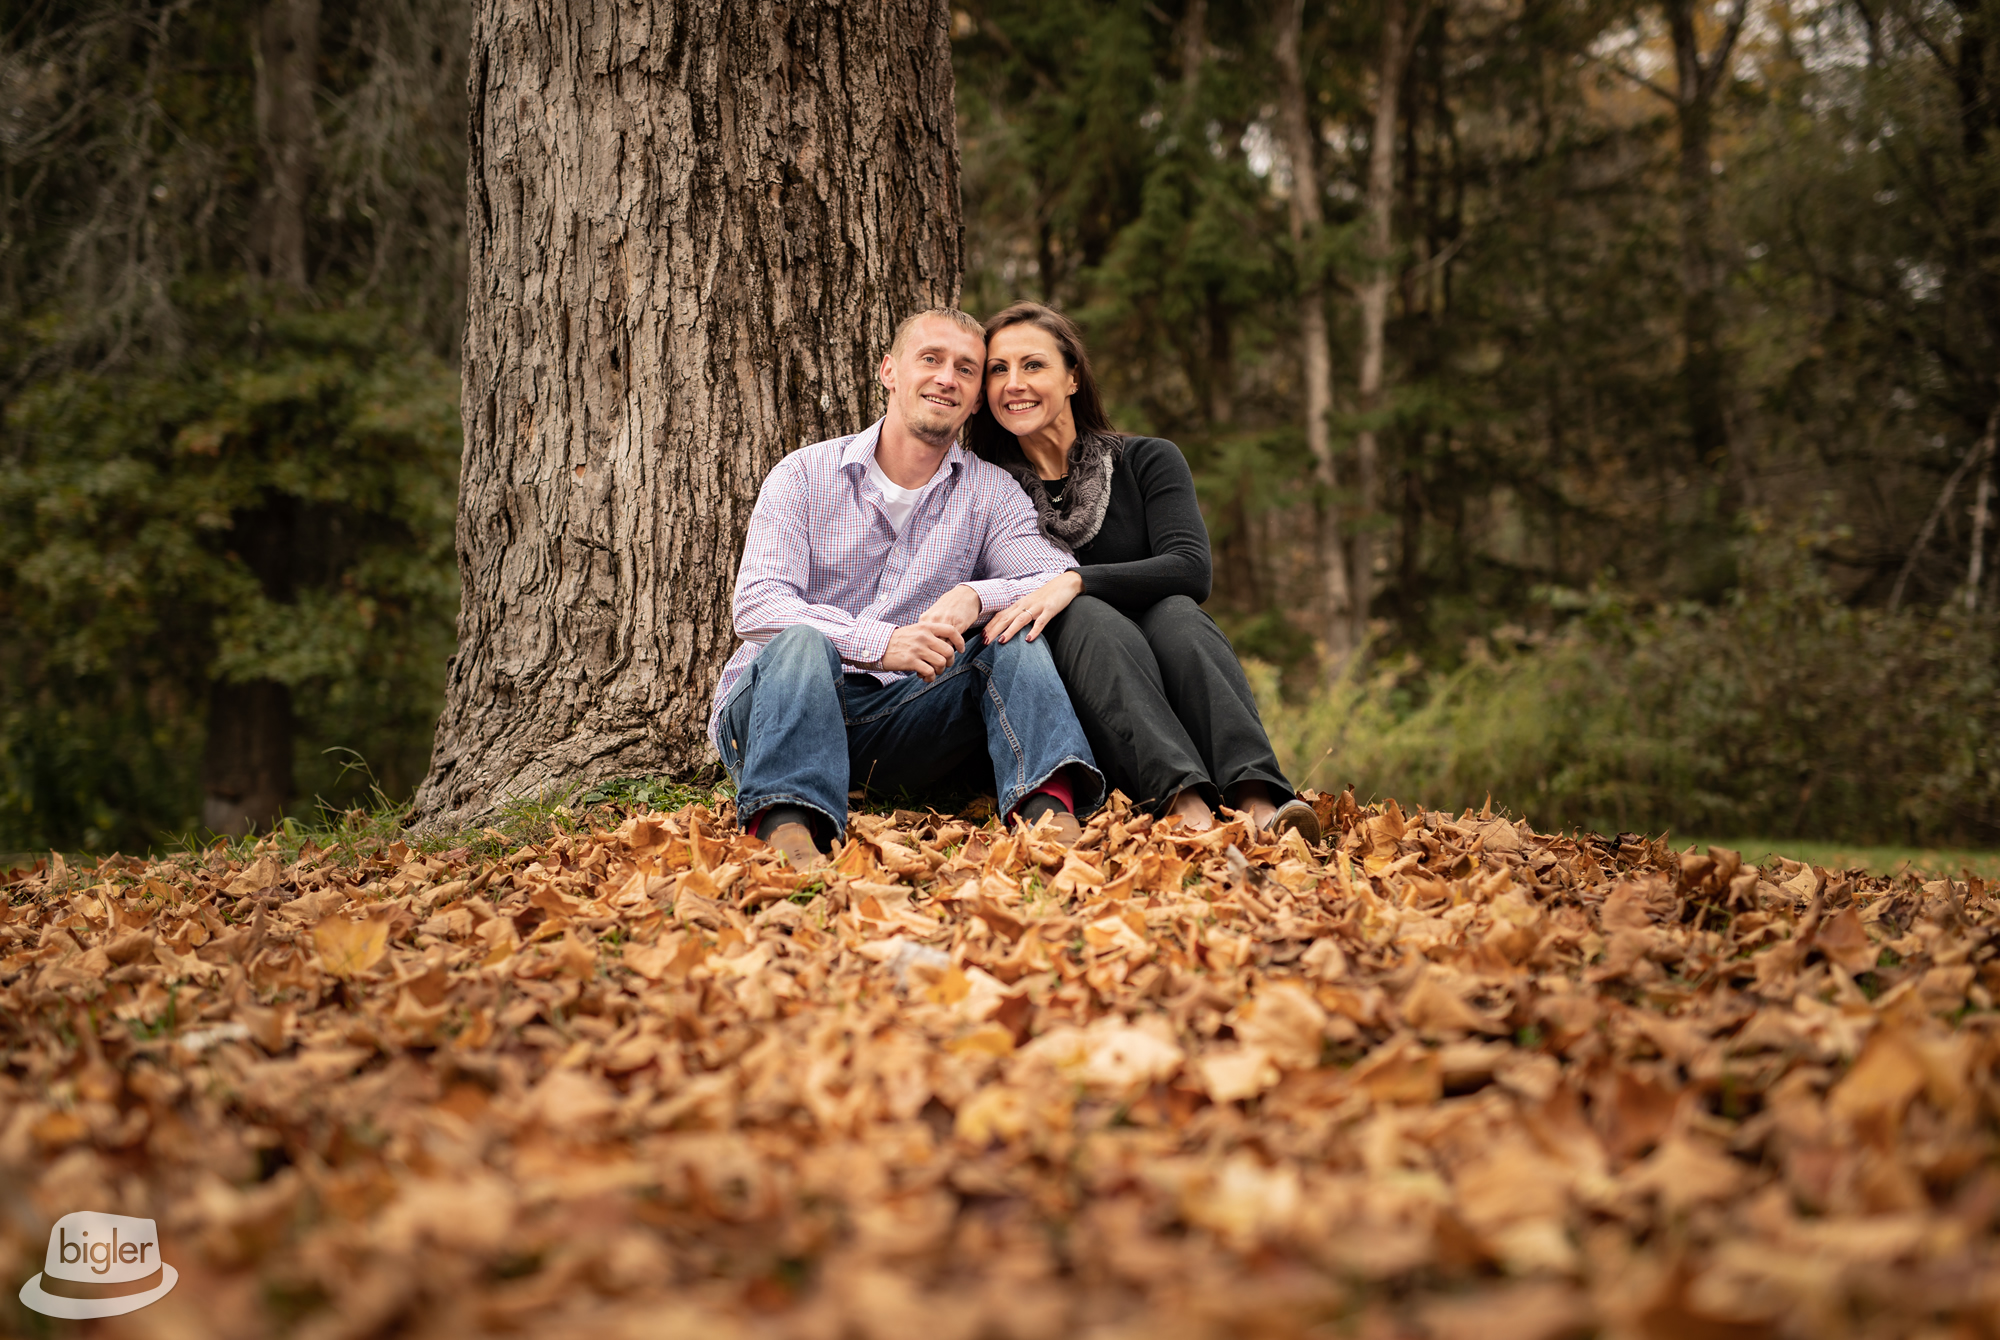 20181022_-_01_-_Shannon_and_Justin_Spa_State_Park_E-Shoot